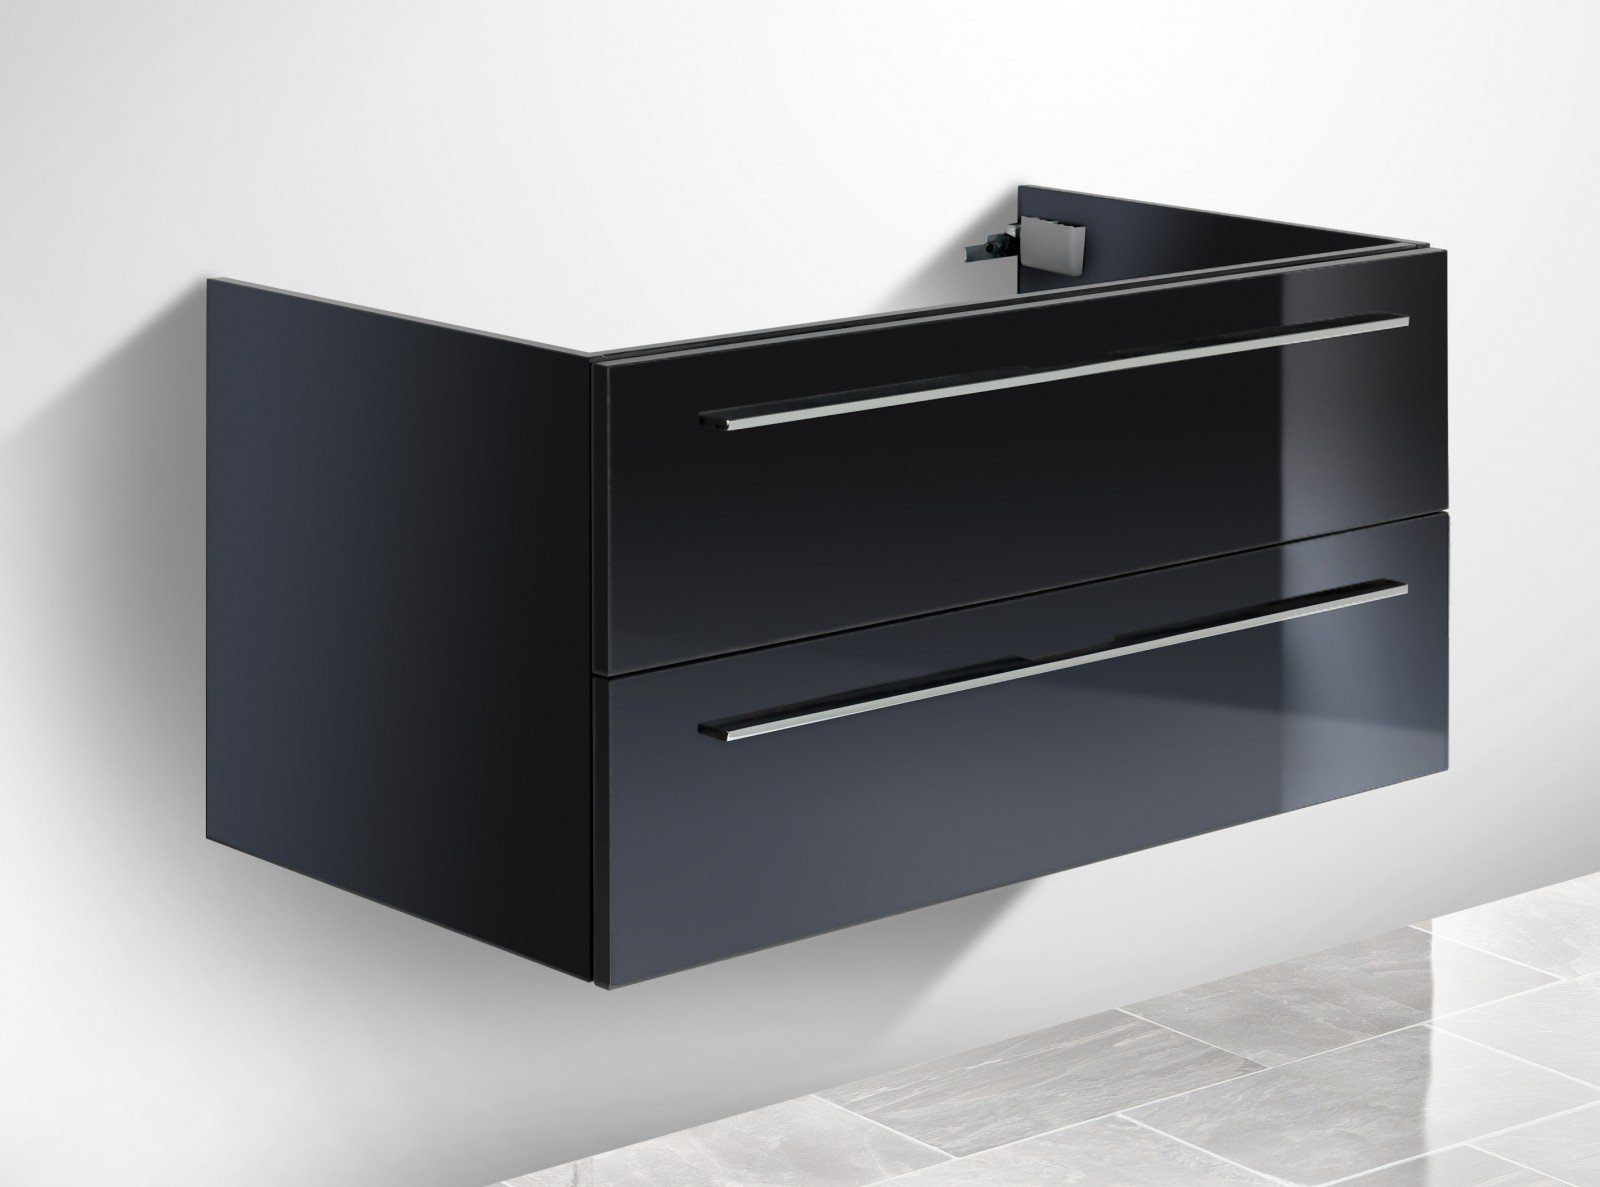 unterschrank f r keramag renova nr 1 plan 60 cm waschbeckenunterschrank. Black Bedroom Furniture Sets. Home Design Ideas